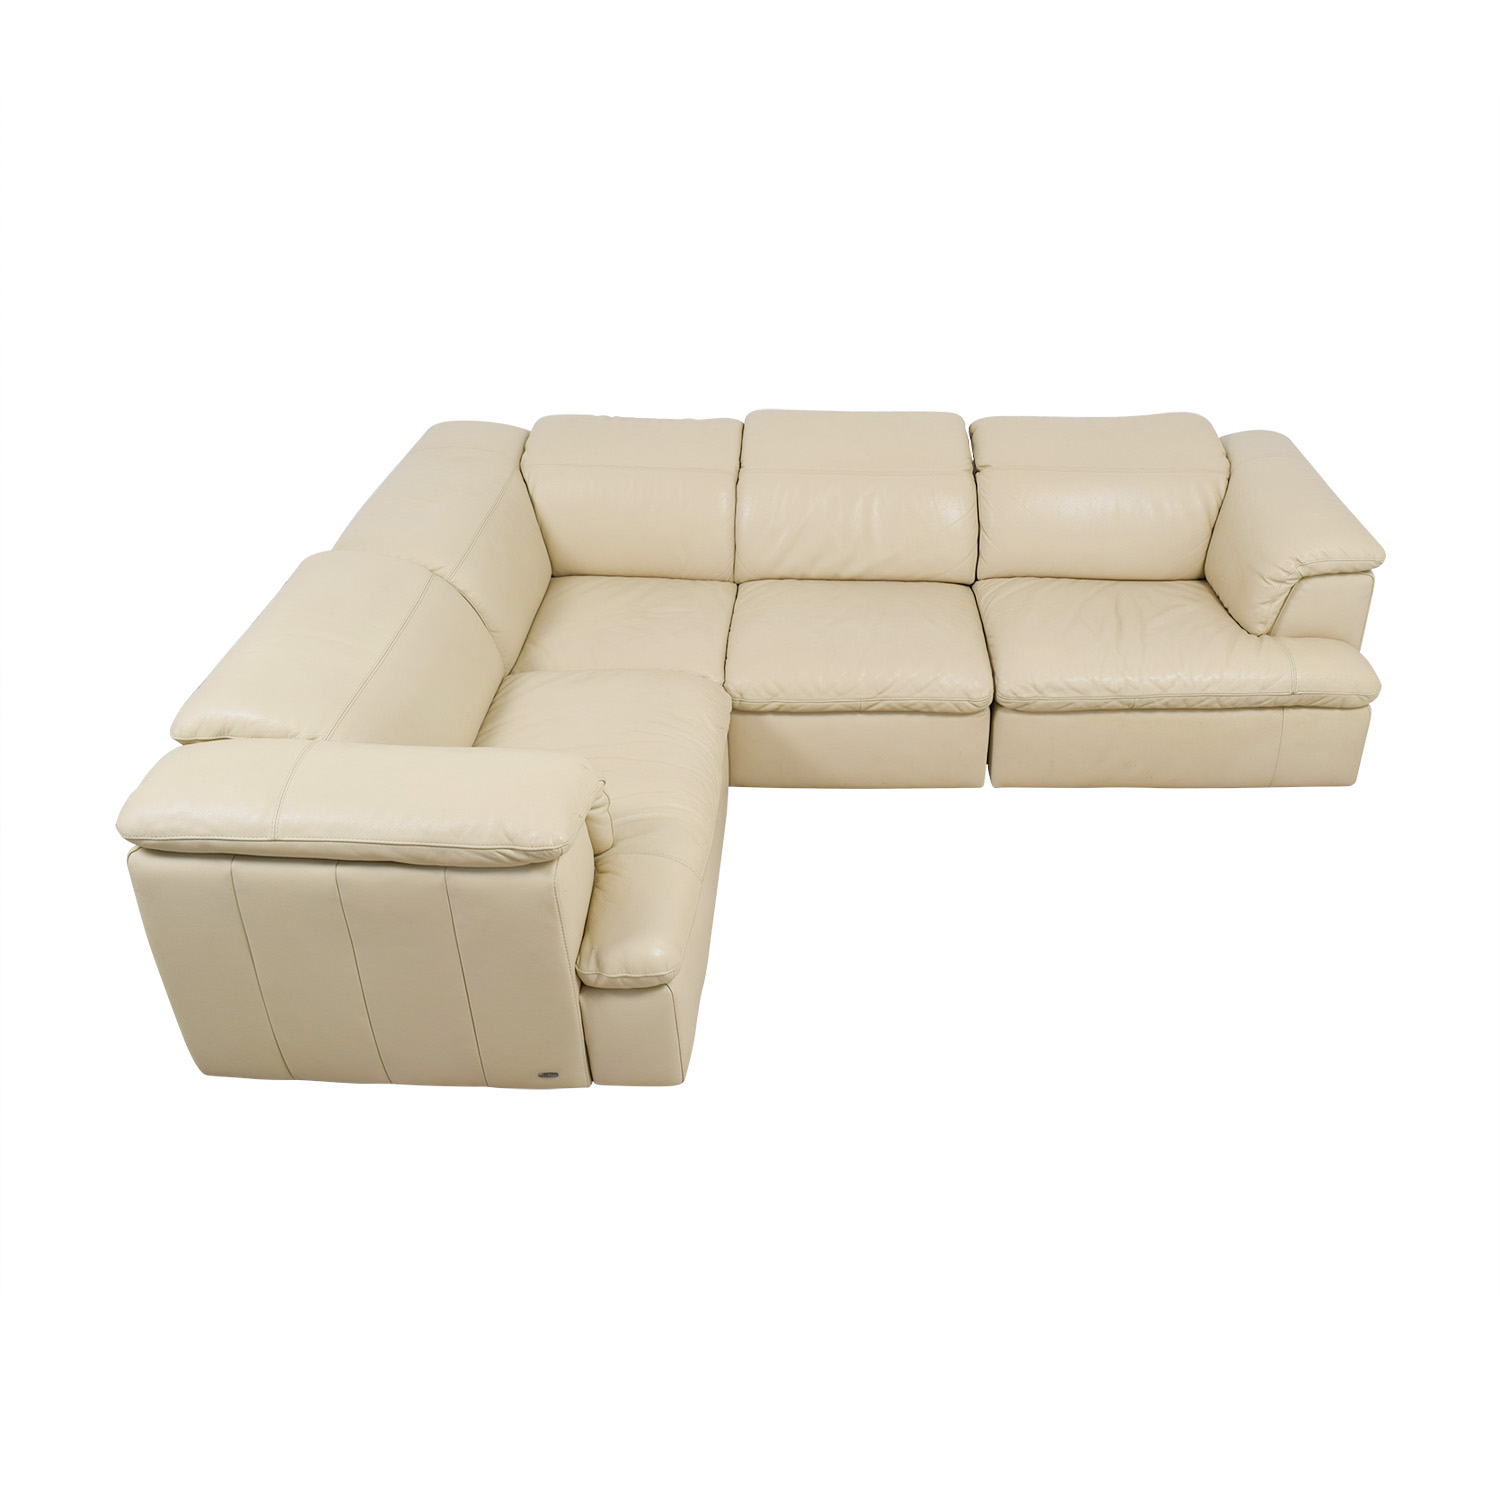 Natuzzi Natuzzi Vanilla Italian Leather L-Shaped Sectional for sale